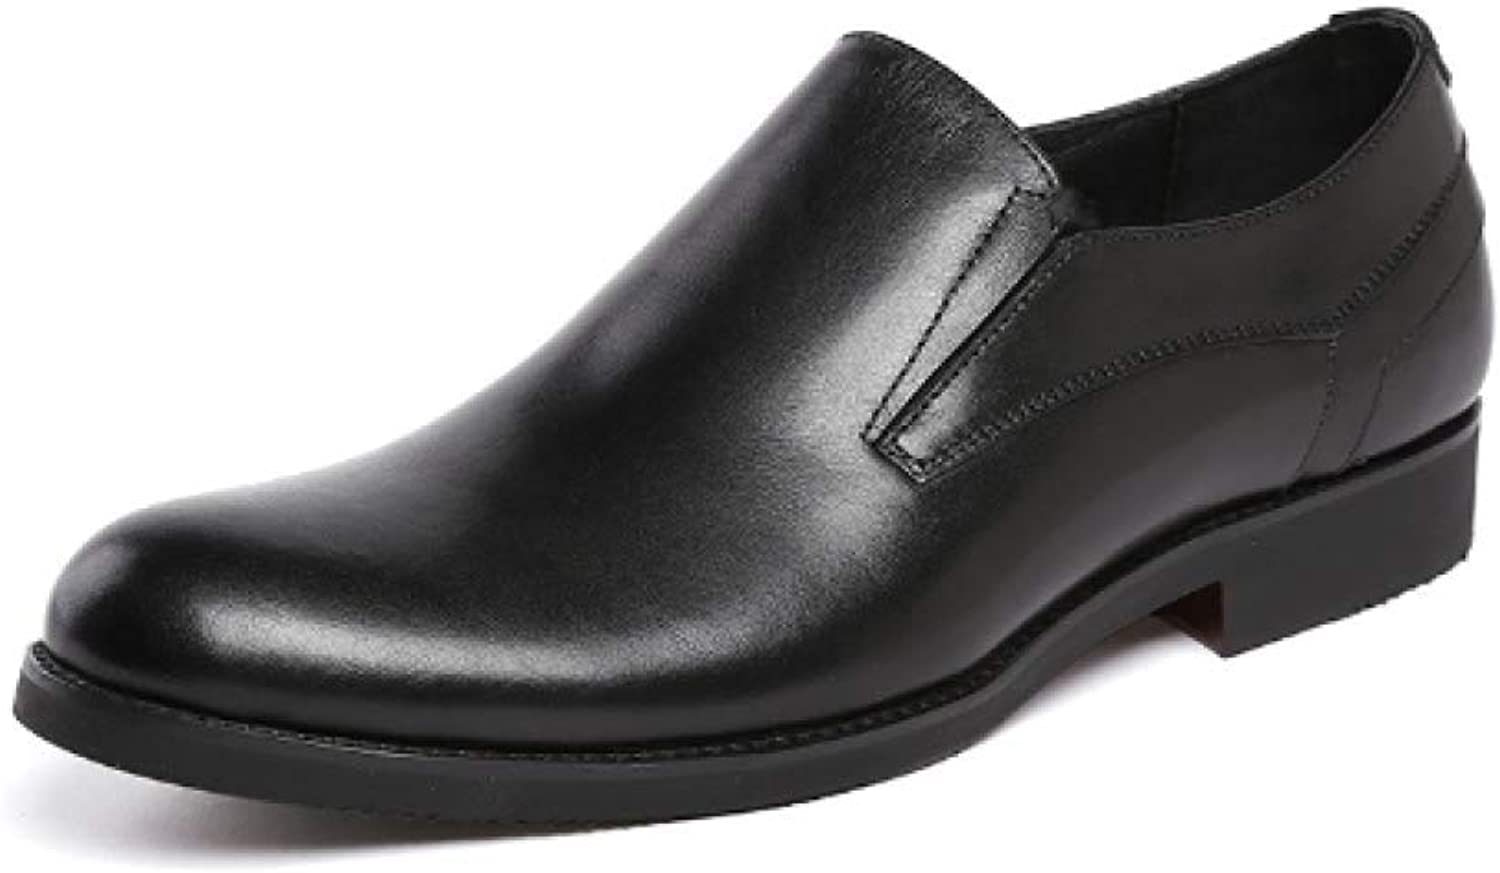 Men's Leather shoes, Set Foot shoes, Round Head, Work shoes, Business, Wearable, Low shoes, Comfortable